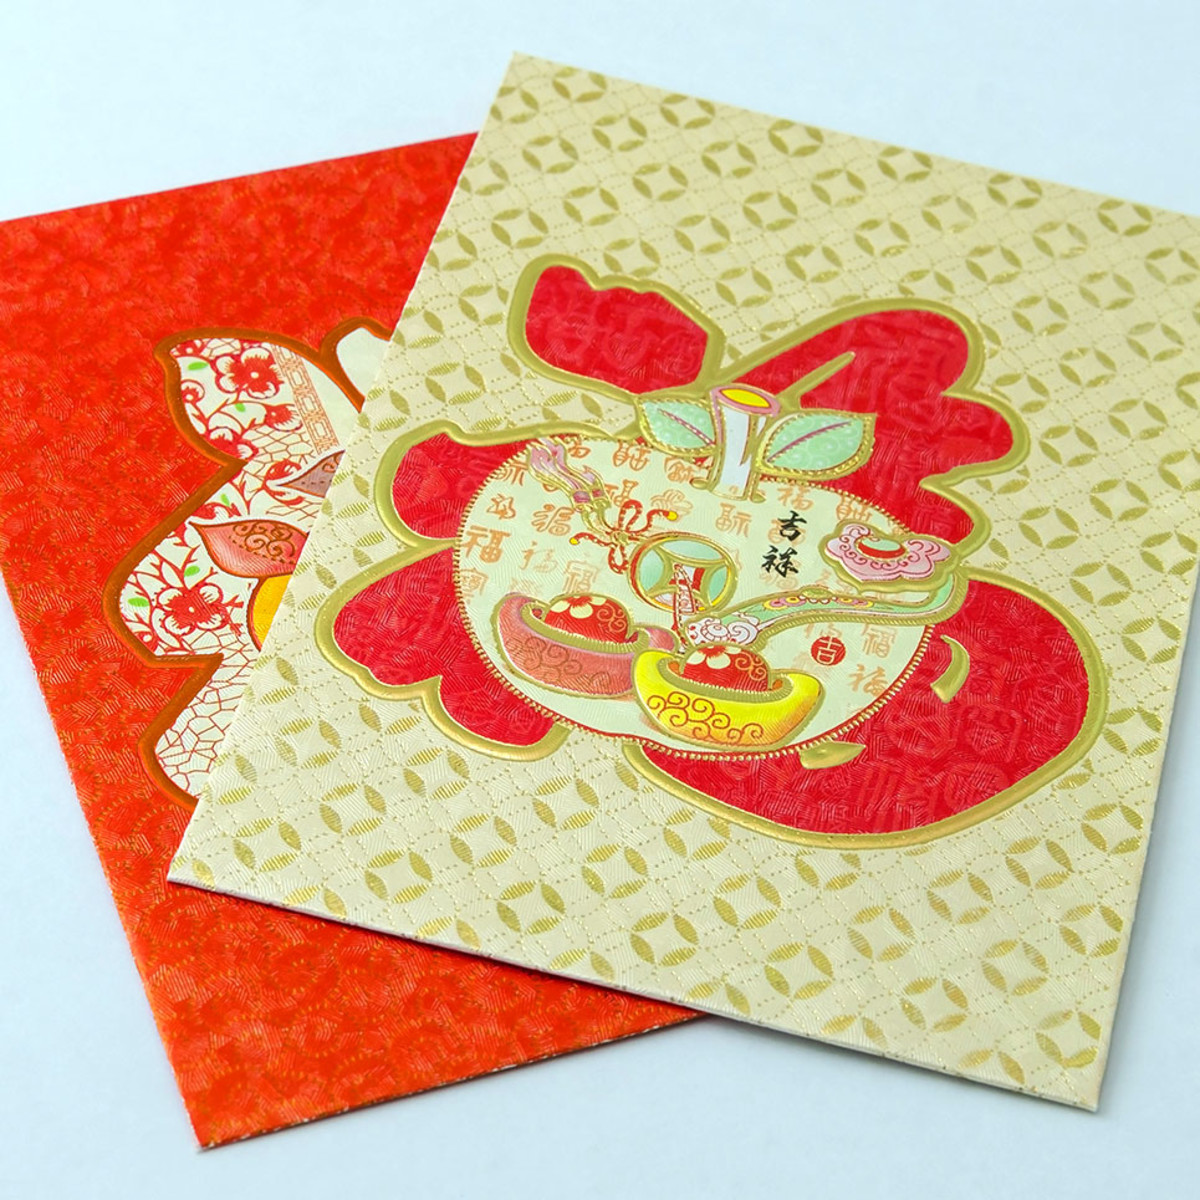 Chinese New Year red packets. Nowadays, they come in many shades of red, pink, and gold.